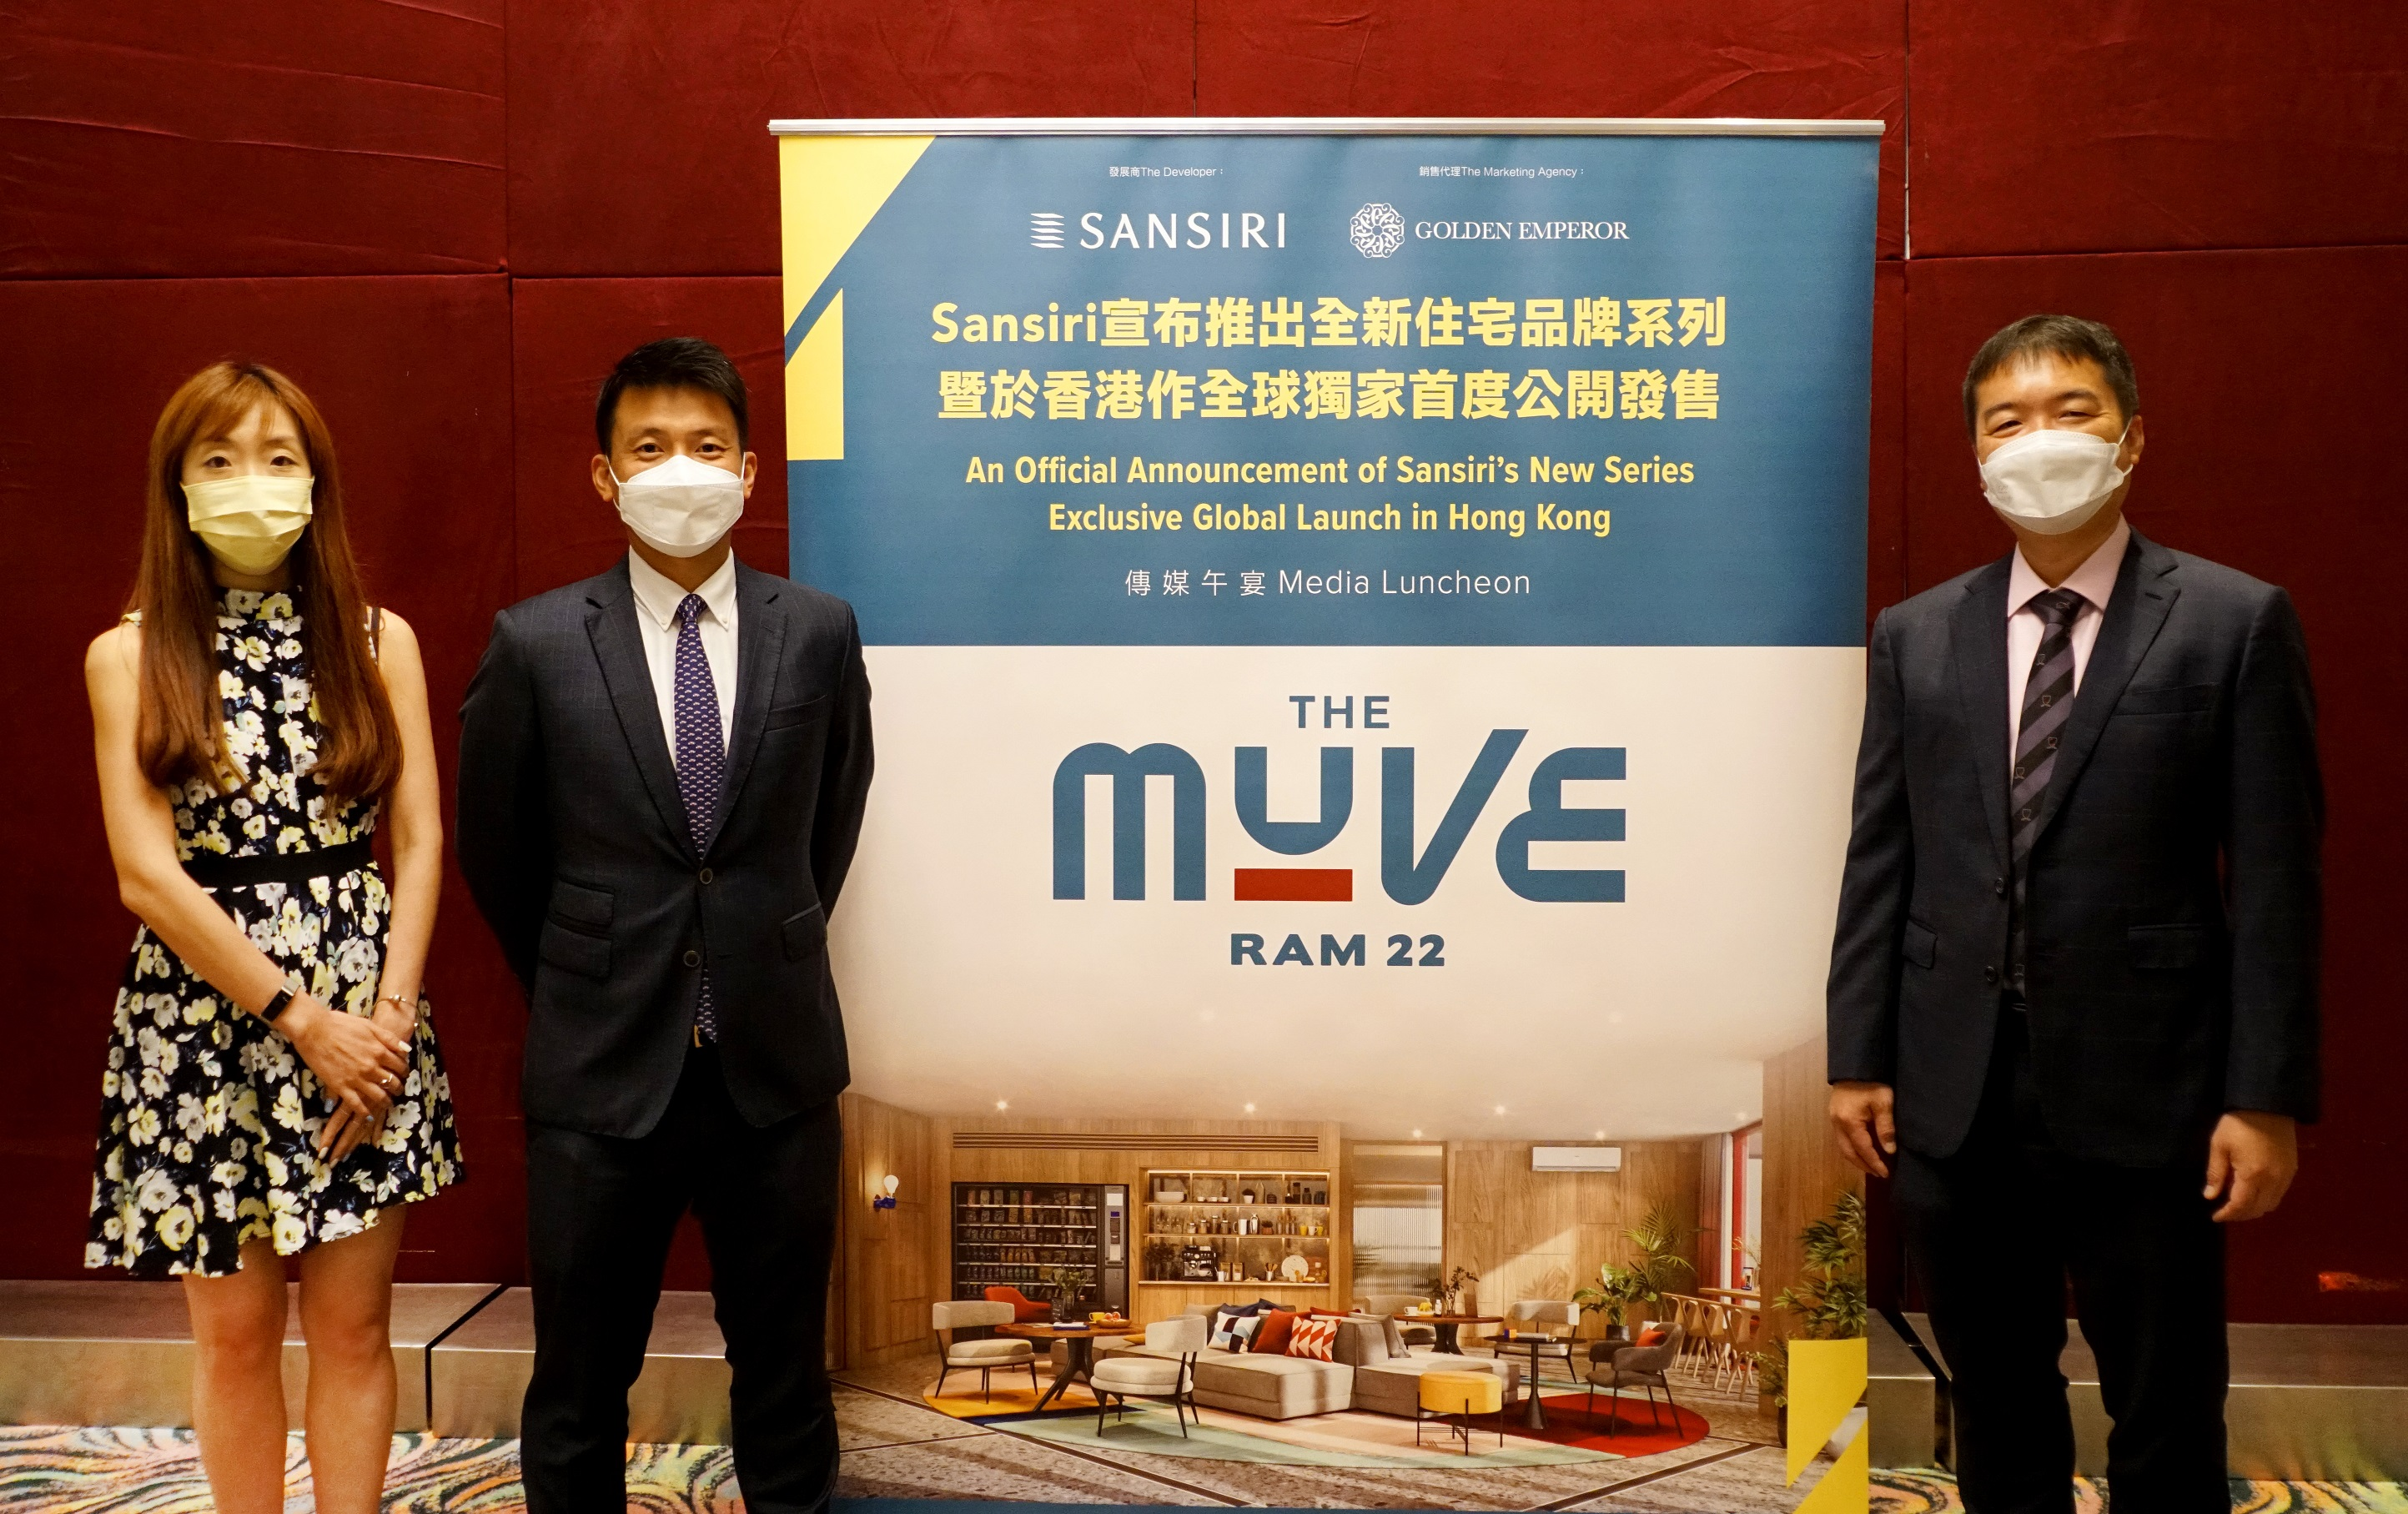 Golden Emperor exclusively introduces THE MUVE Ram22 in Hong Kong